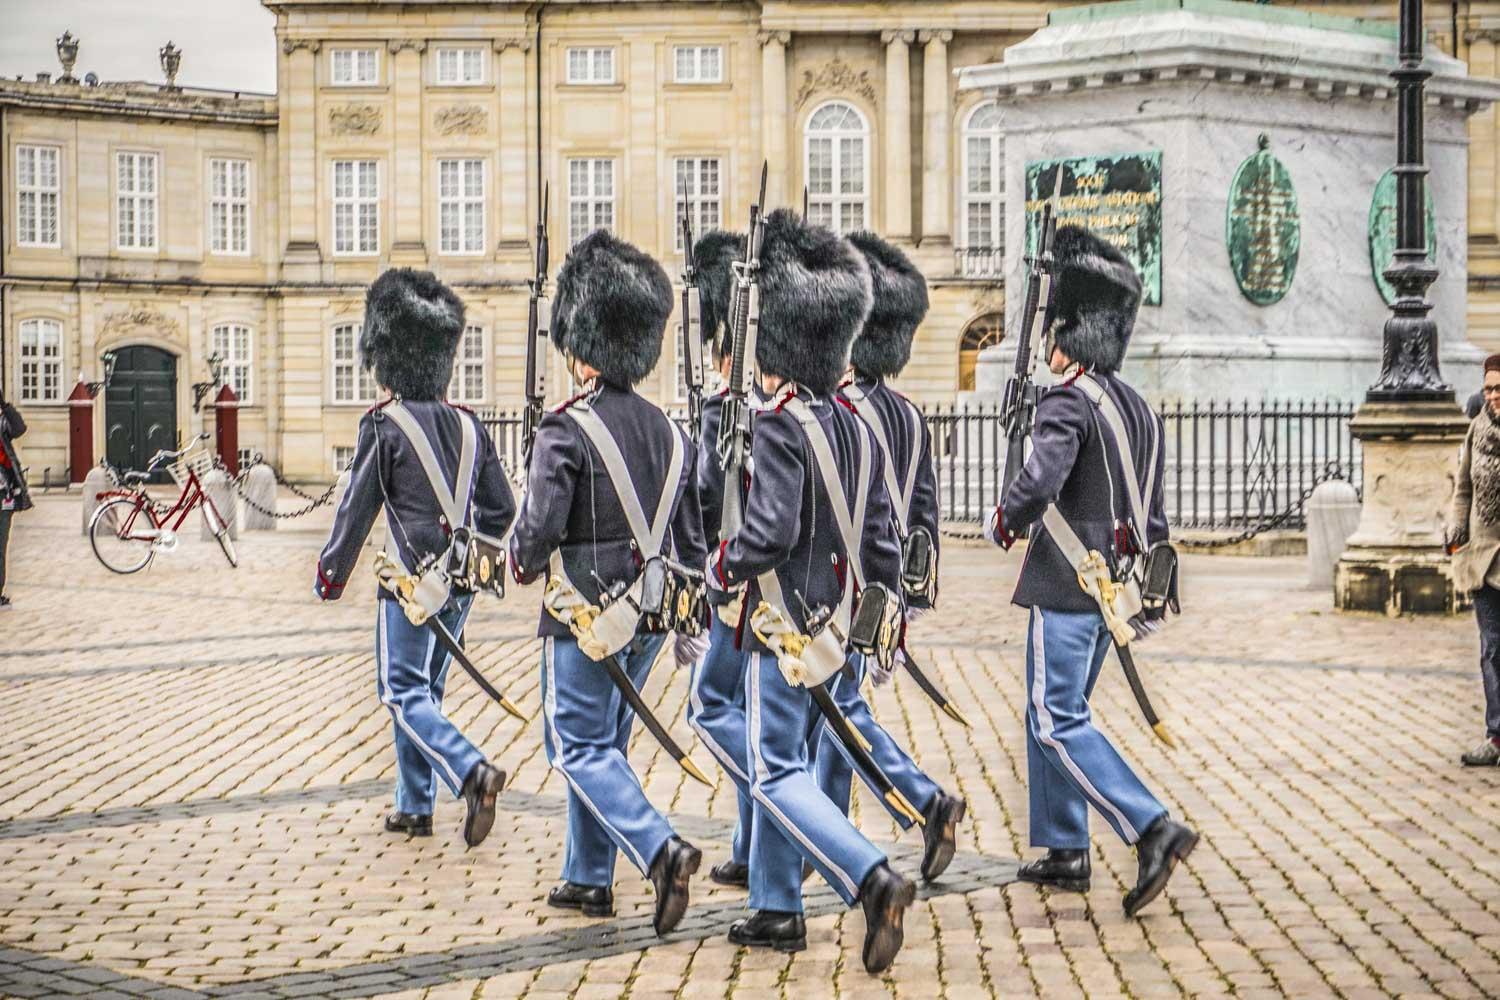 Changing of the guard at the Amalienborg Palace